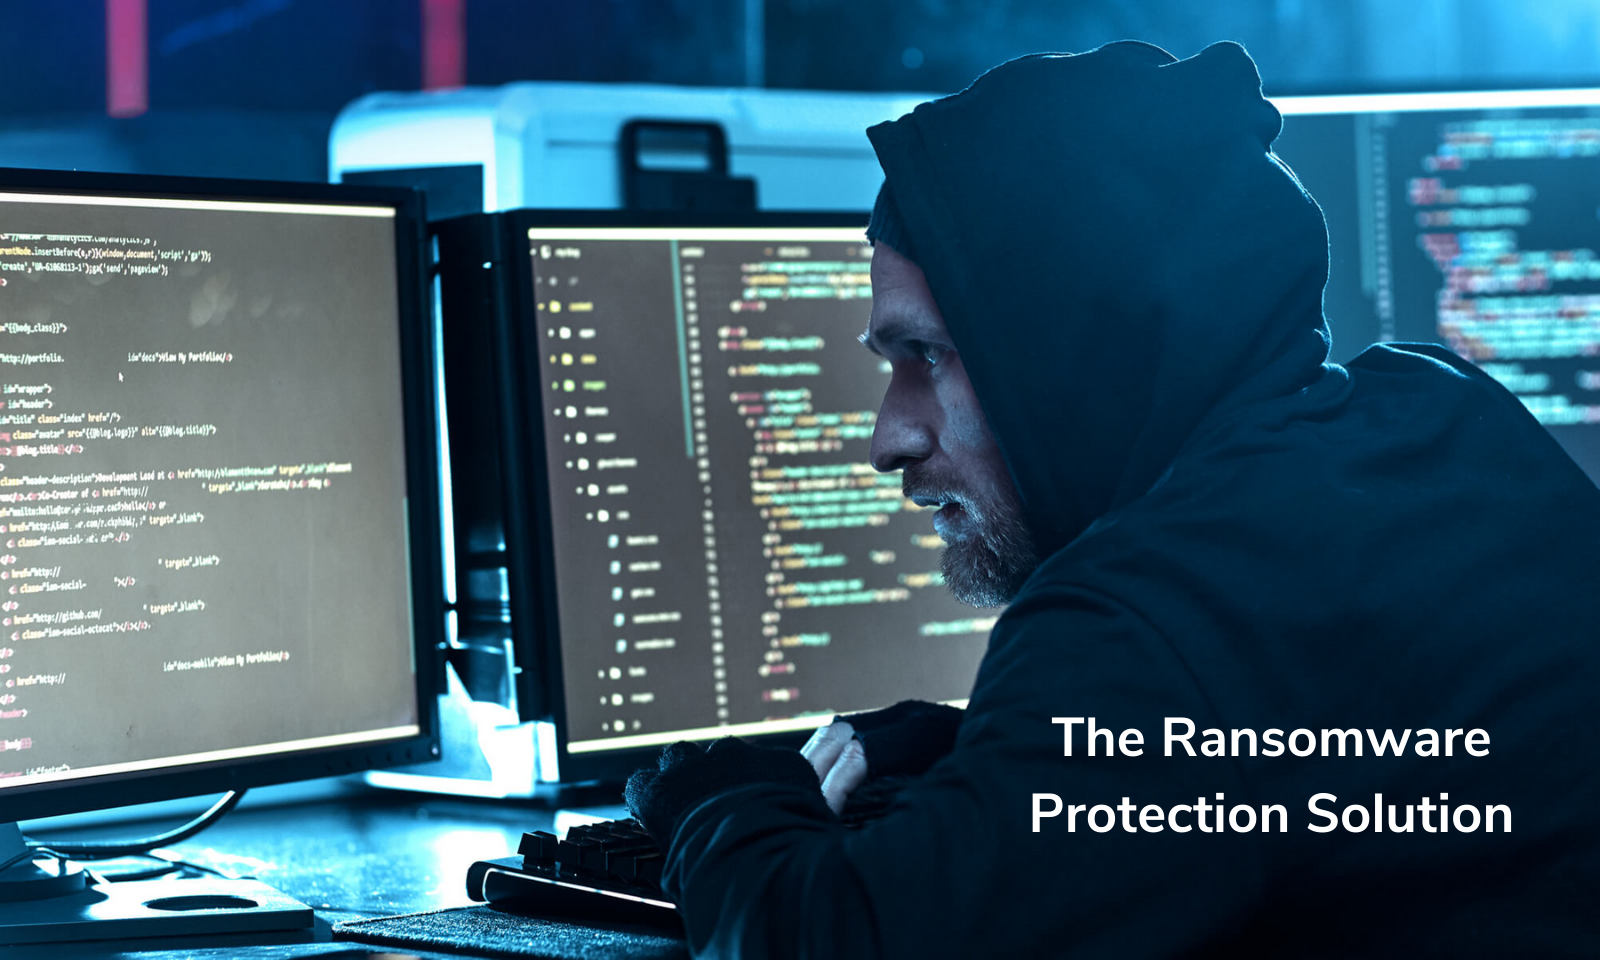 The Ransomware Protection Solution